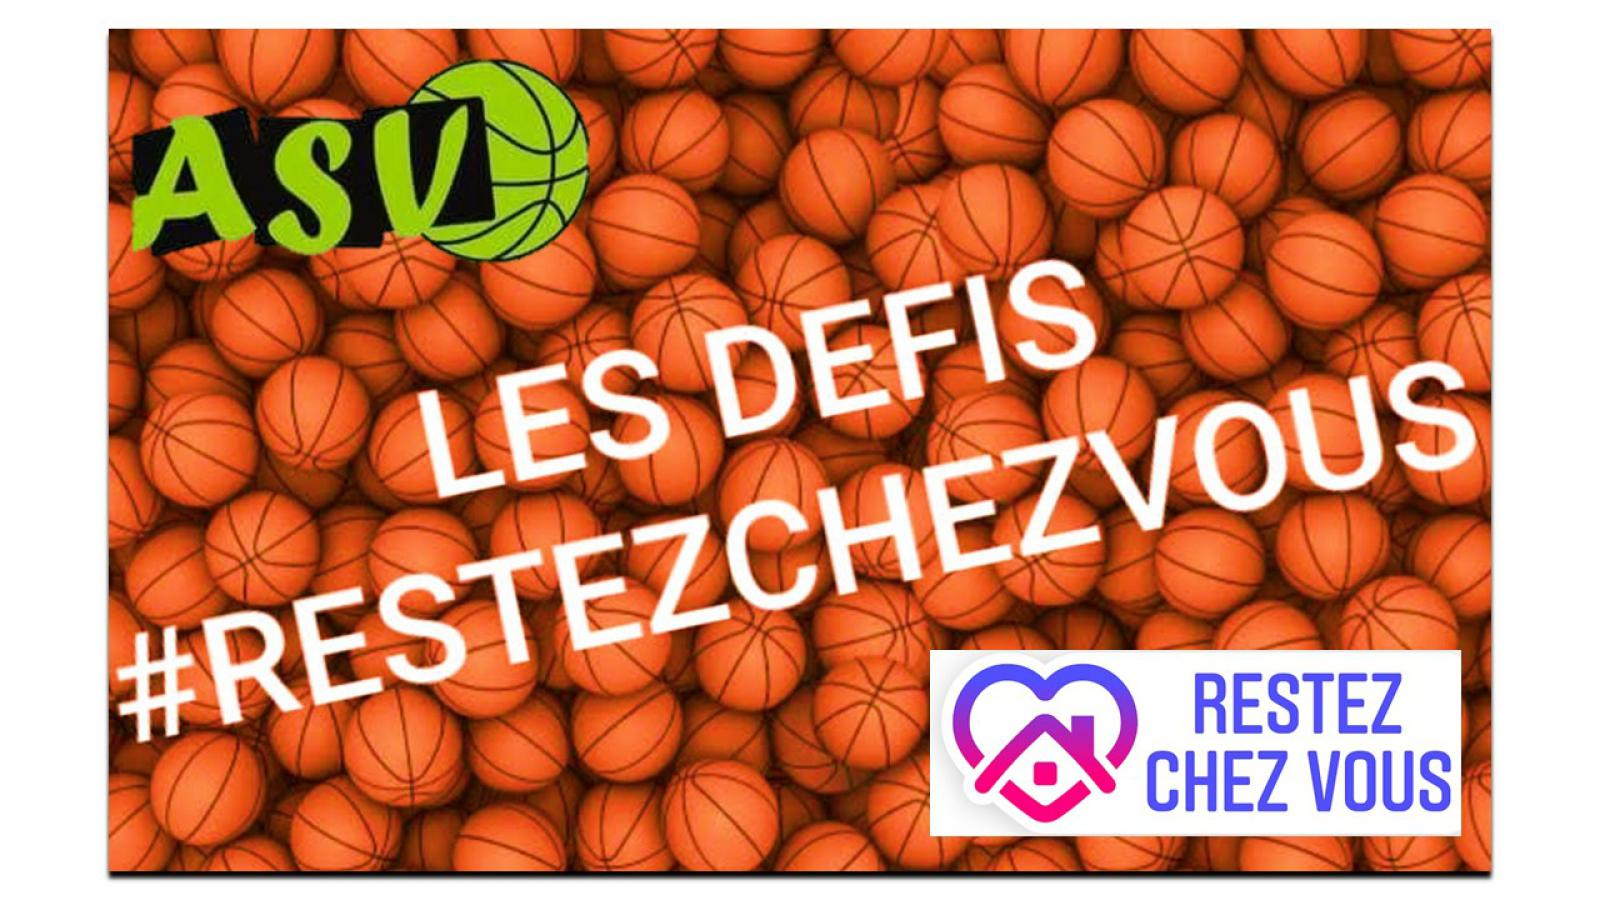 Pendant le confinement, l'ASV Basket vit encore !